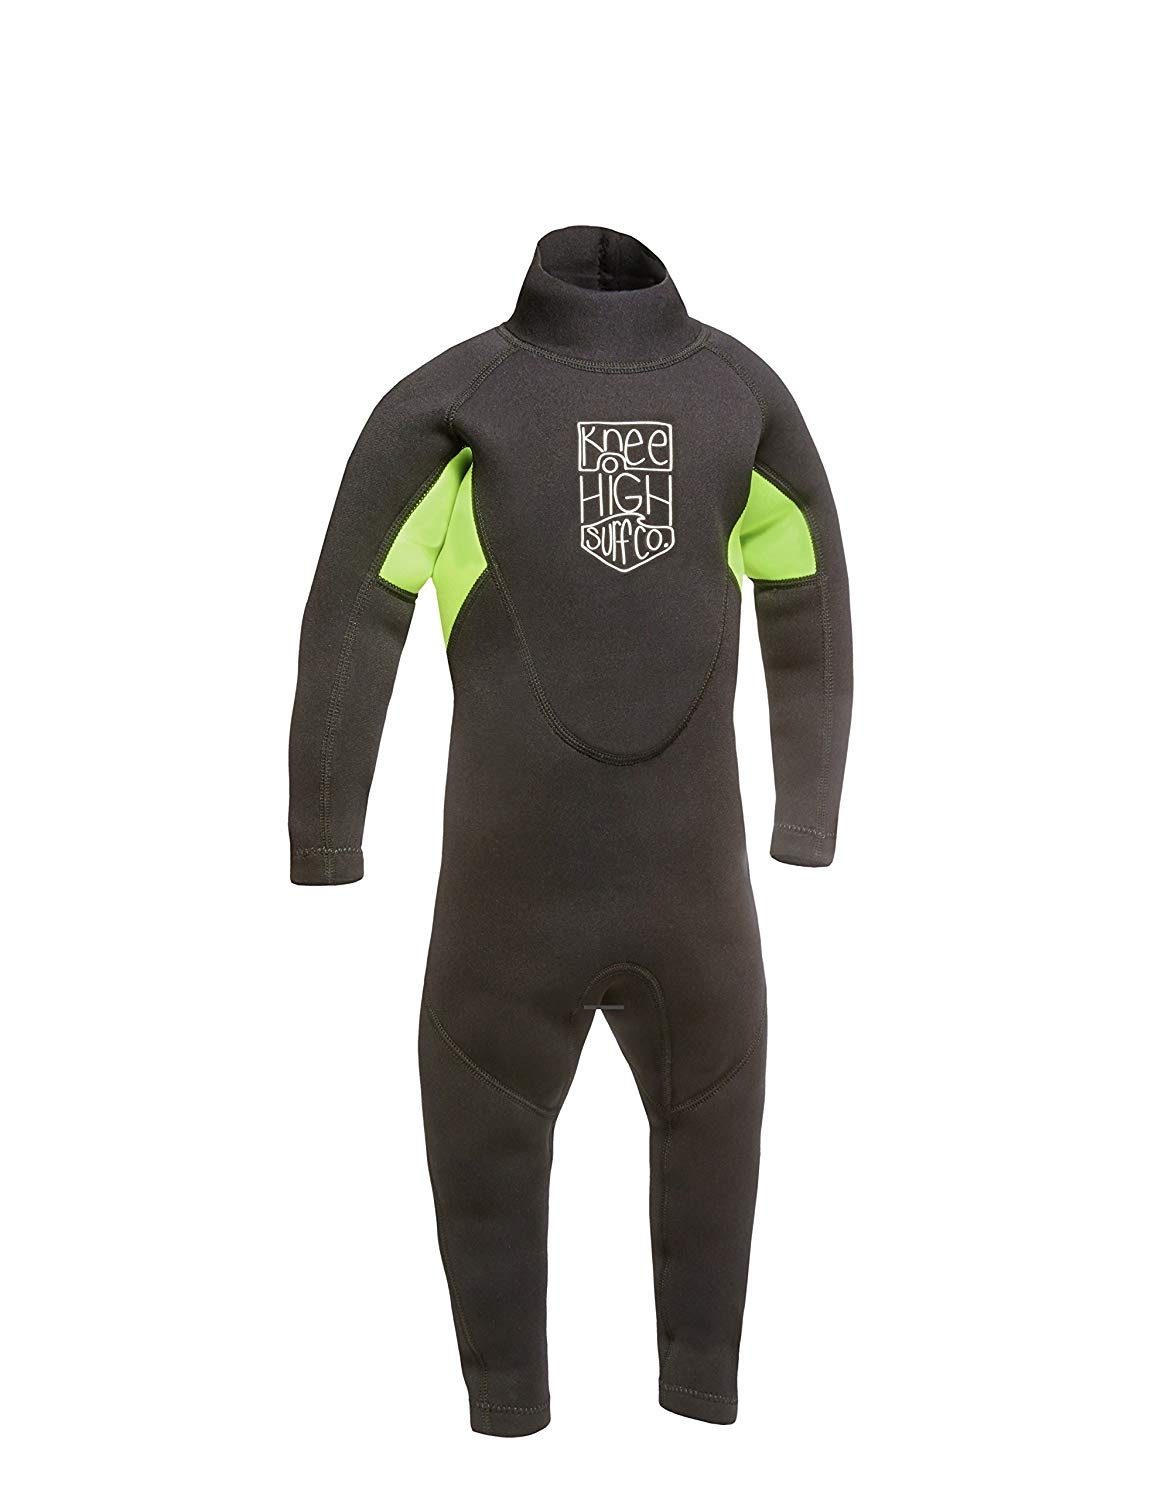 Knee High Surf Co. Kids Wetsuit Full Suit for Infant Toddler and Baby